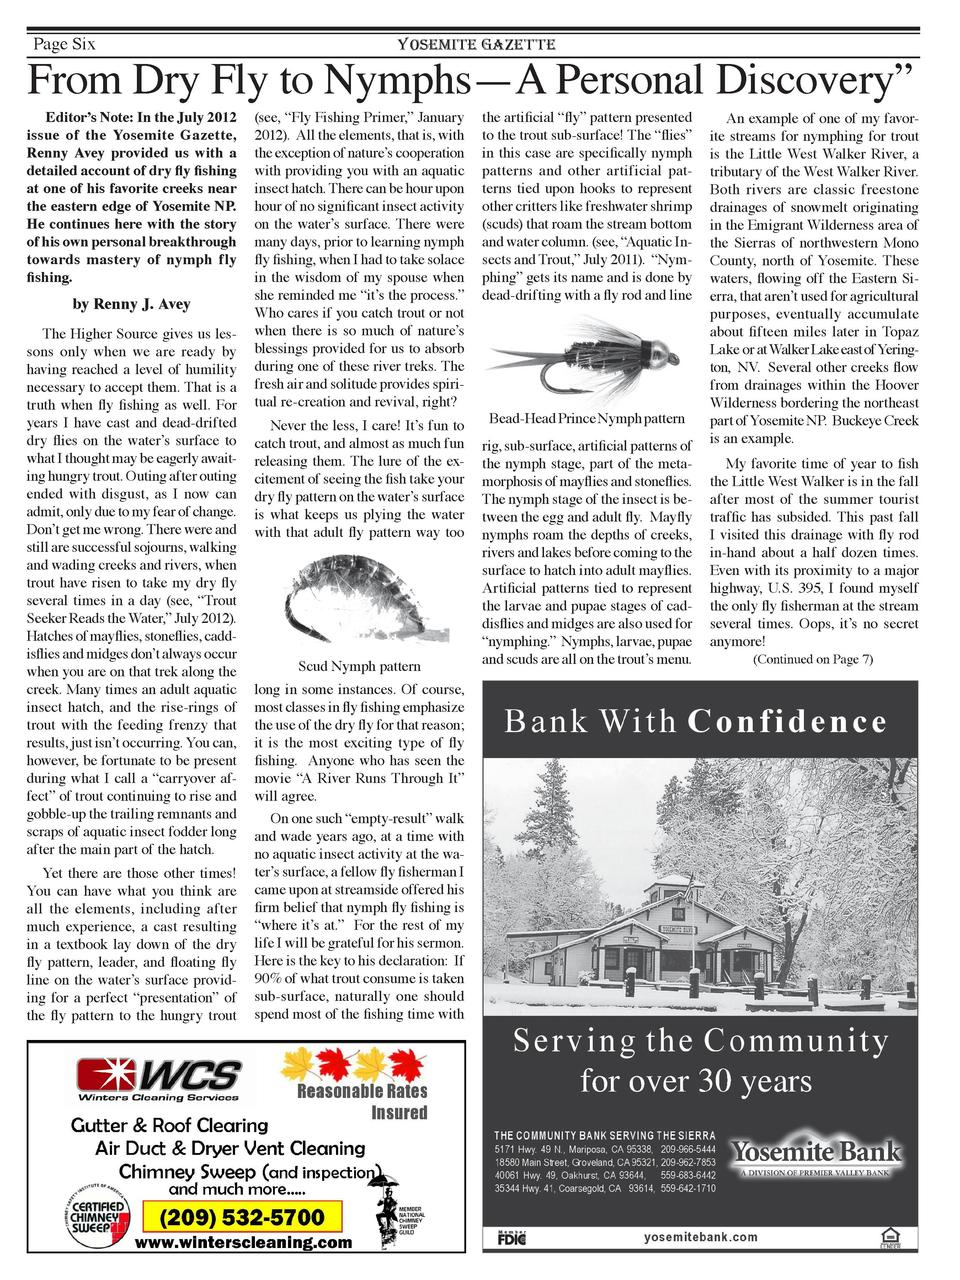 Page Six  YOSEMITE GAZETTE  From Dry Fly to Nymphs      Personal Discovery    A  Editor   s Note  In the July 2012 issue o...